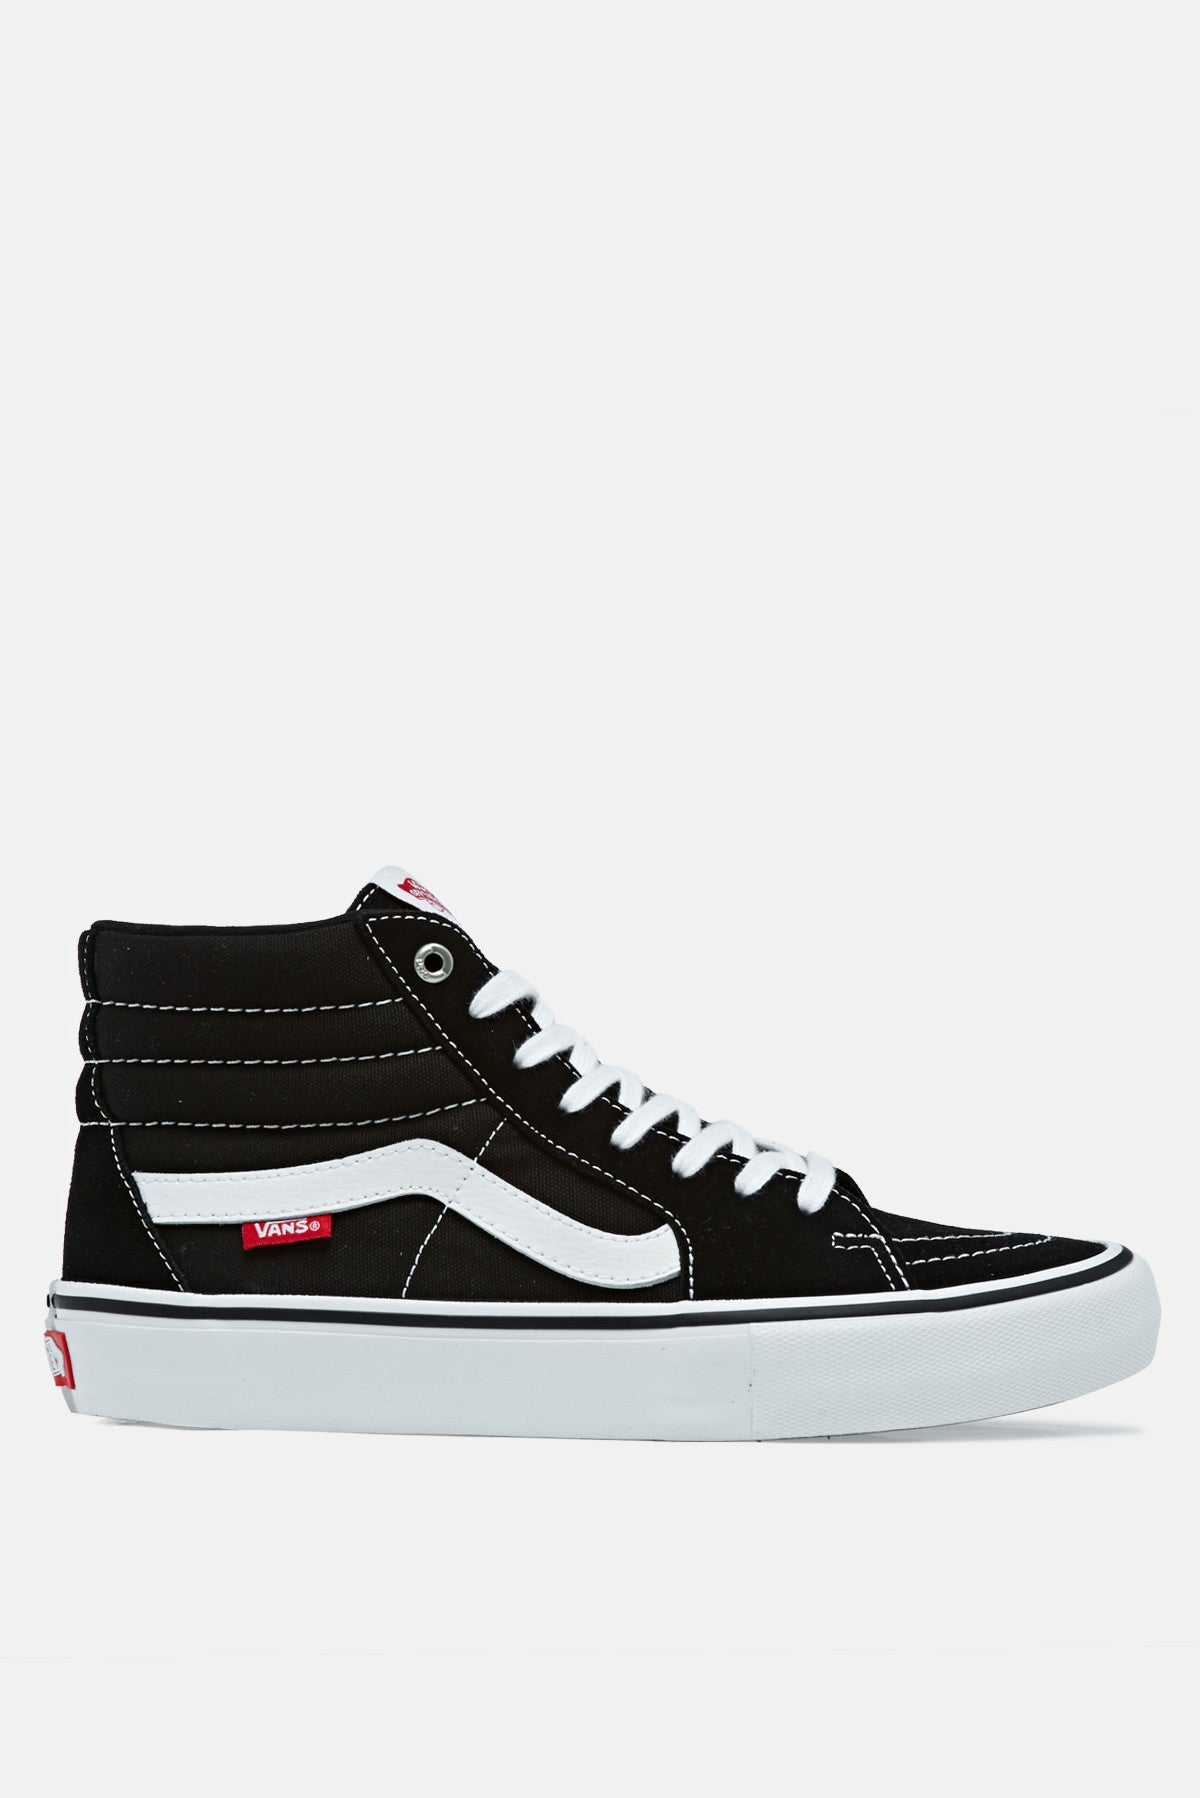 Vans SK8 Hi Pro Shoes available from Priory 4bcba2466